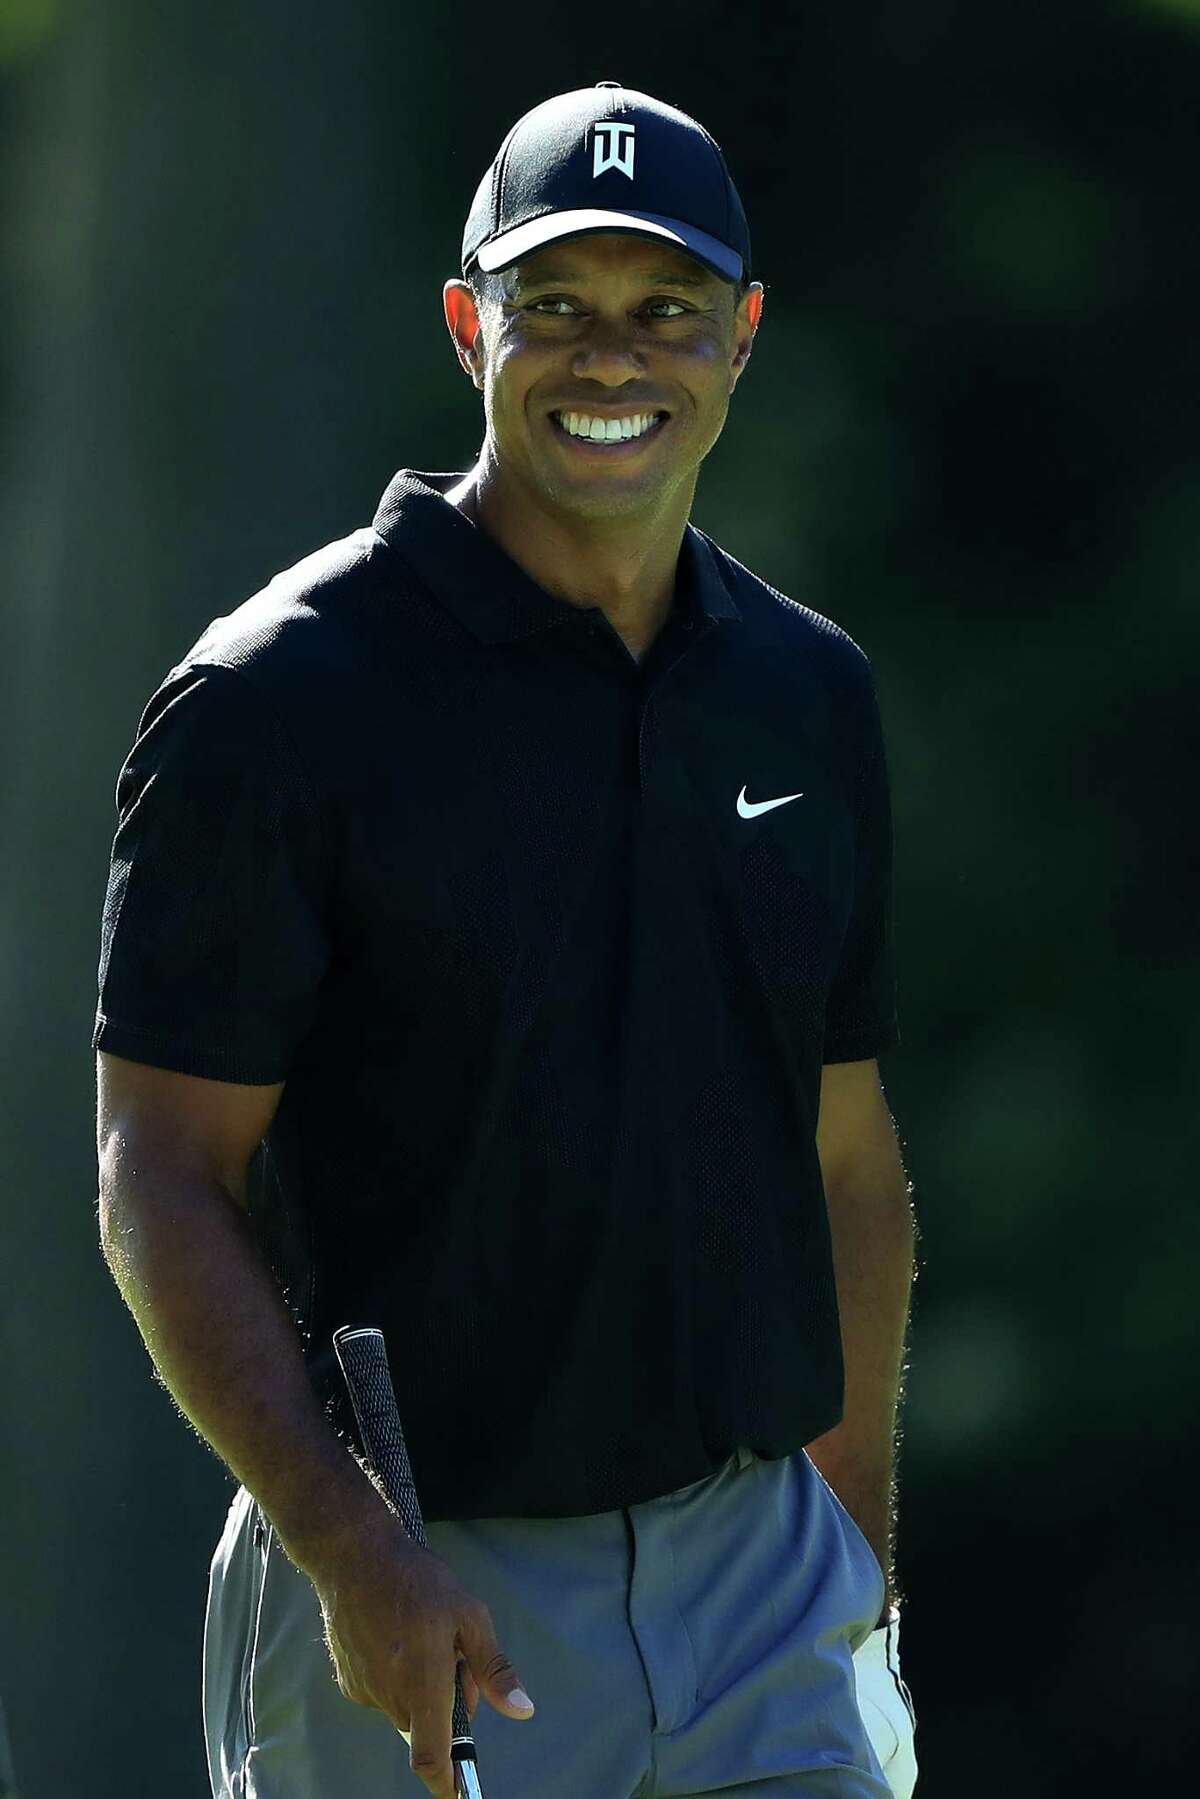 DUBLIN, OHIO - JULY 14: Tiger Woods smiles during a practice round prior to The Memorial Tournament at Muirfield Village Golf Club on July 14, 2020 in Dublin, Ohio. (Photo by Sam Greenwood/Getty Images)